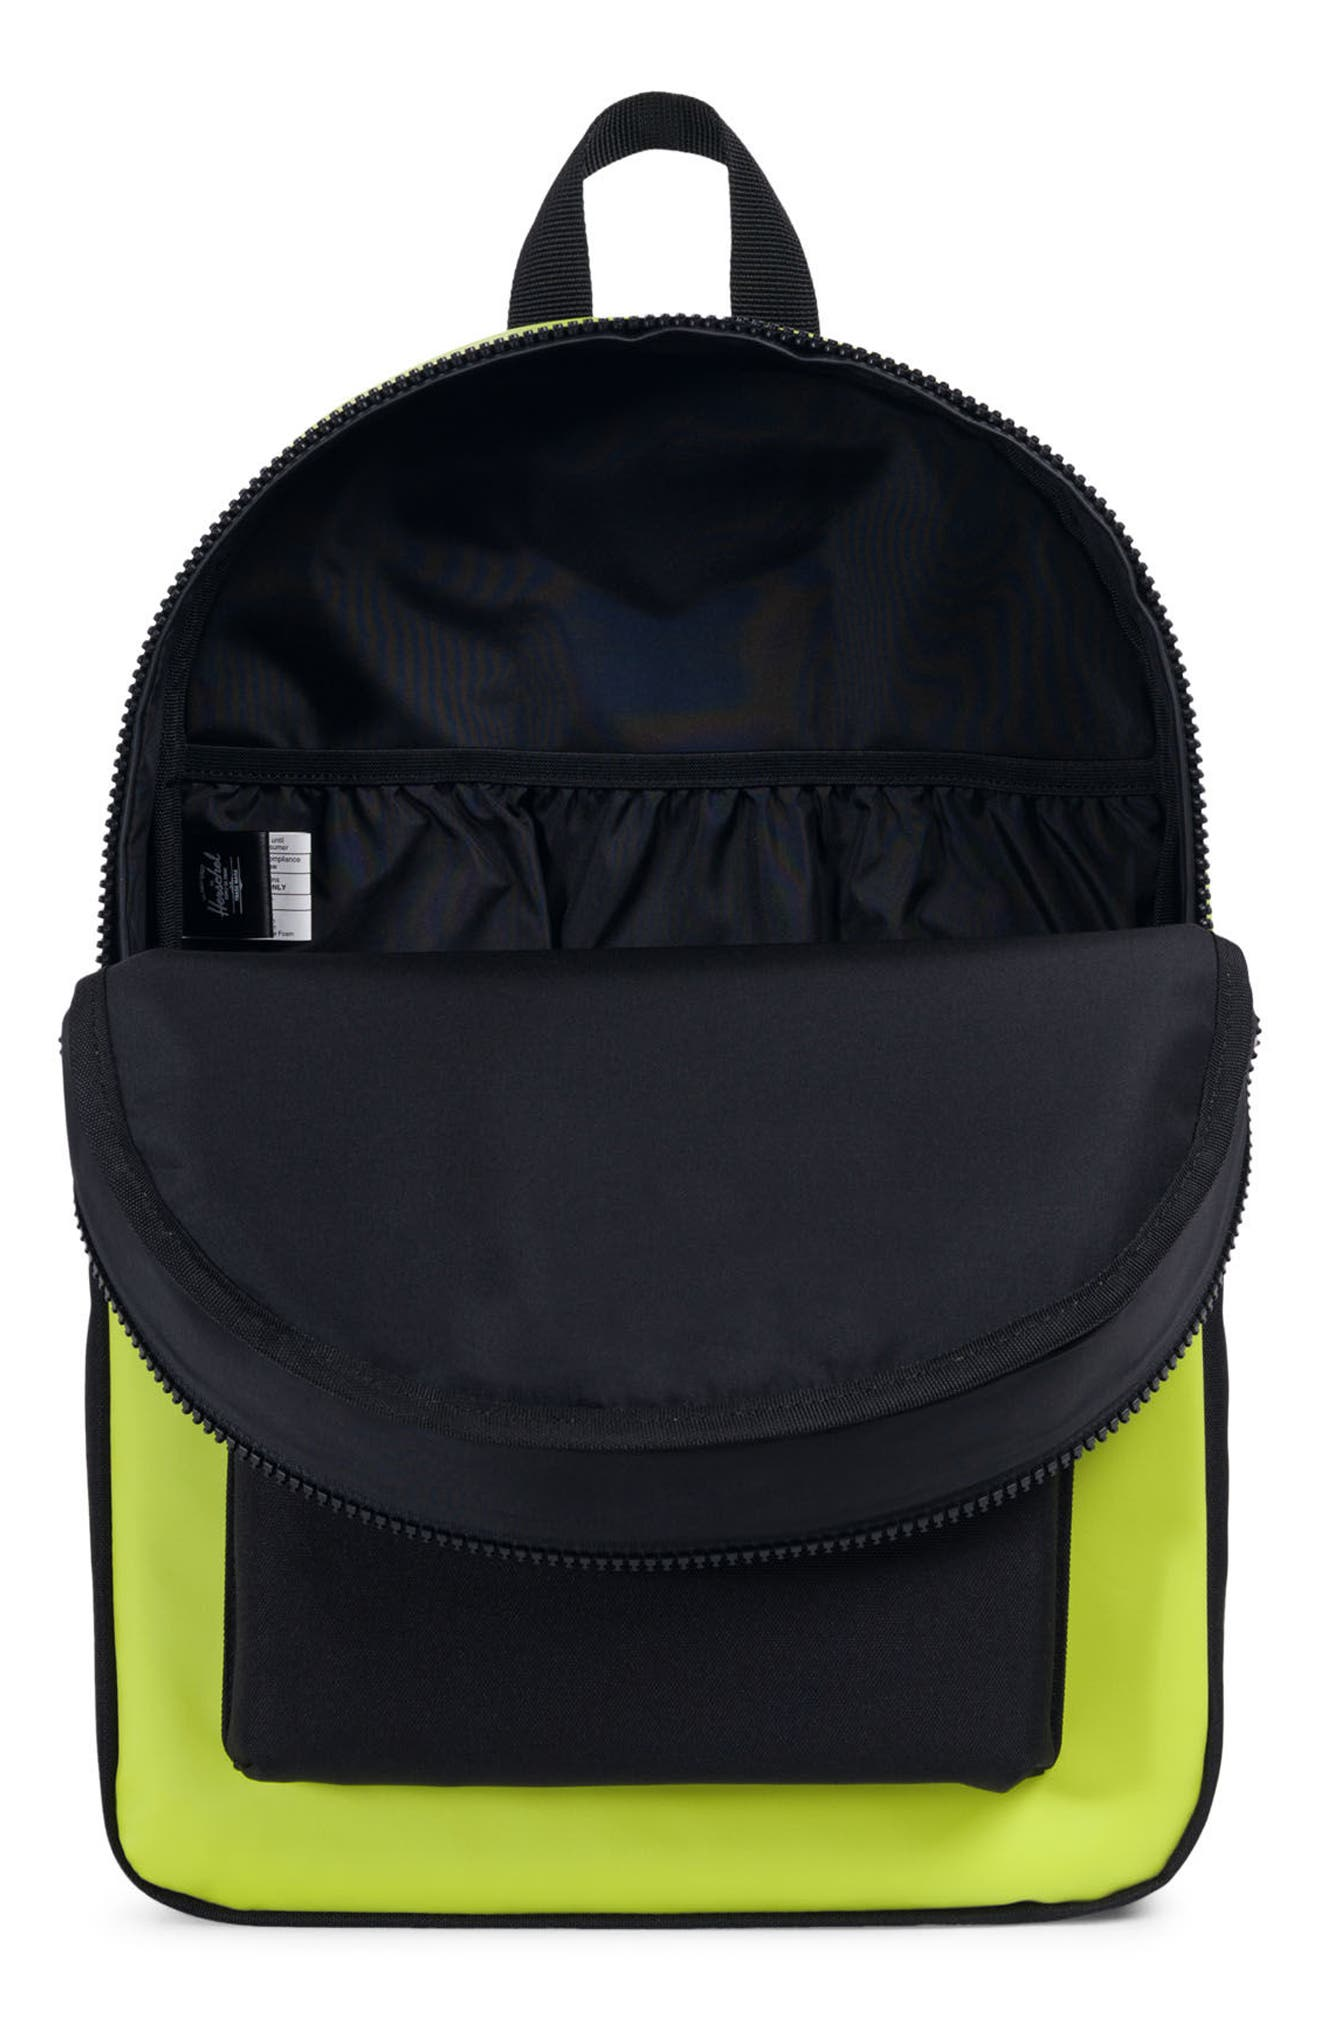 Winlaw Polycoat Studio Backpack,                             Alternate thumbnail 9, color,